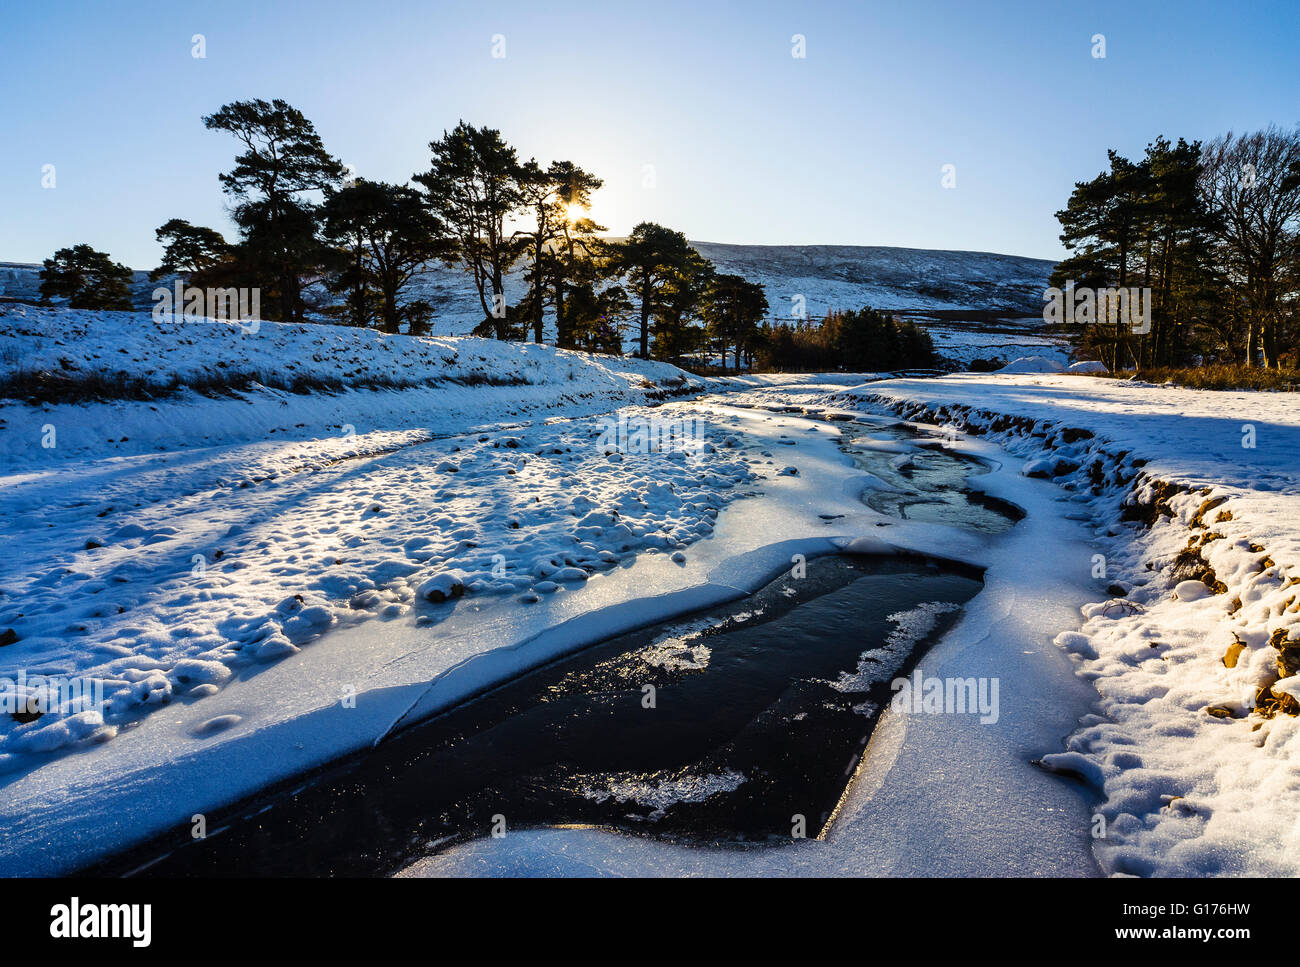 Winter morning on the Marshaw Wyre river near the Trough of Bowland in the Forest of Bowland Lancashire England - Stock Image